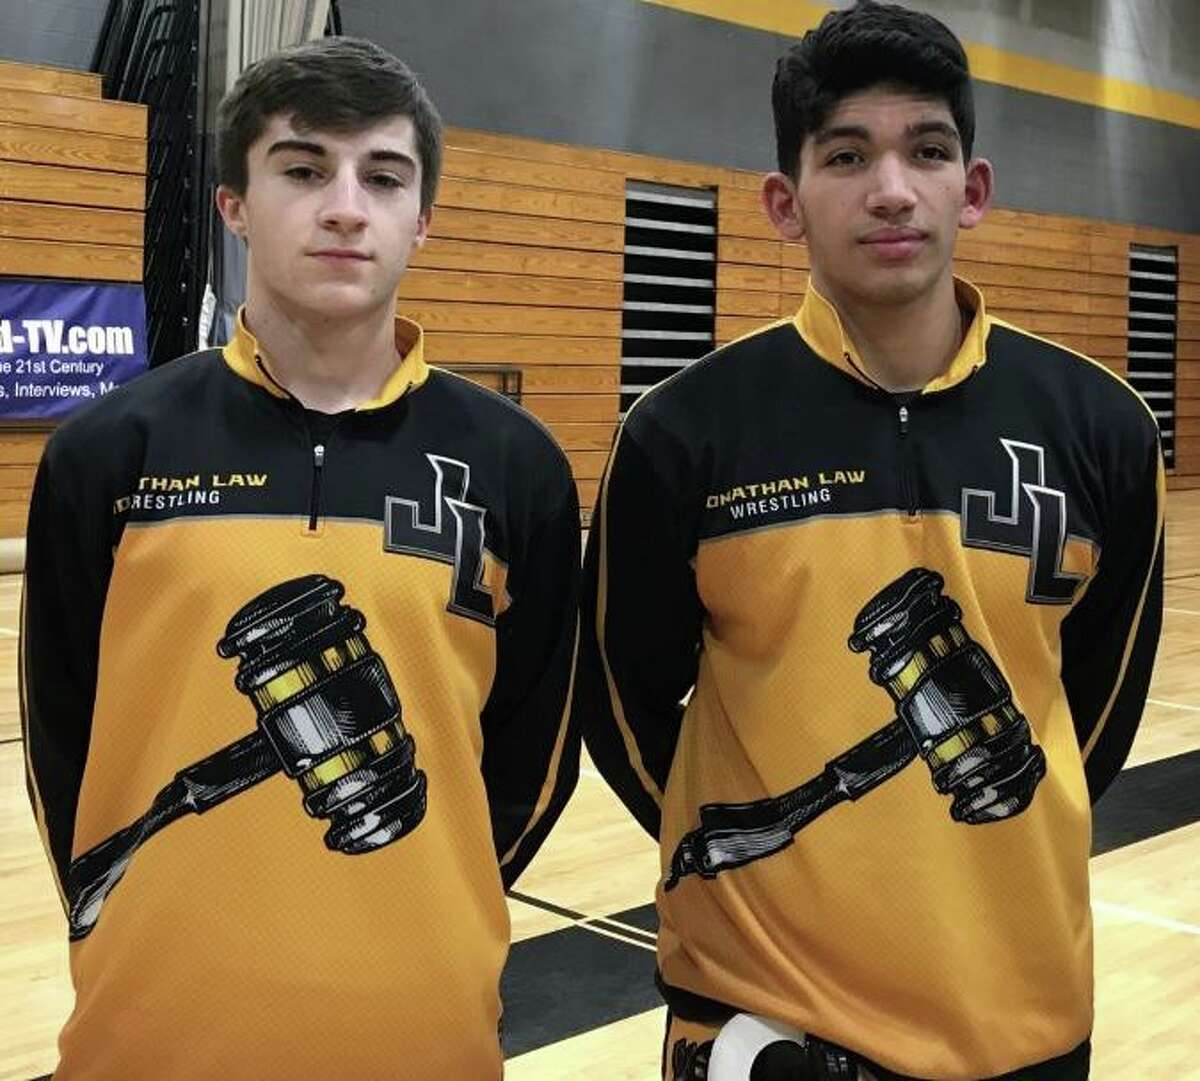 Jonathan Law co-captain's Alex DeLorio and Antonio Rosado posted wins in the match with Shelton.